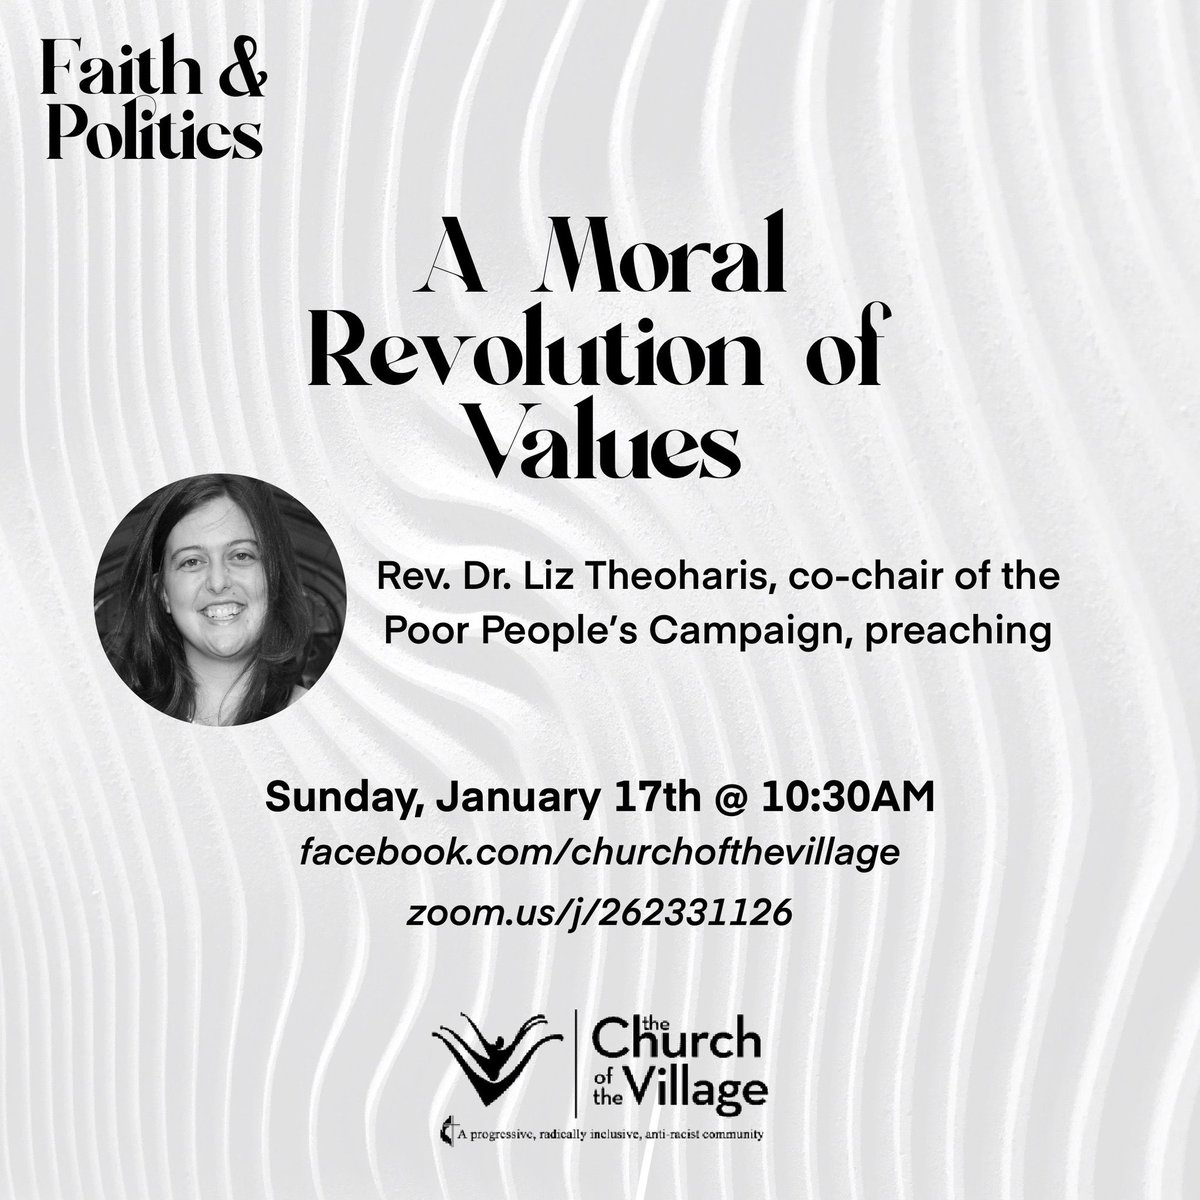 We celebrate the life of MLK this weekend -- but racists are still emboldened, poverty is deepening, and the earth is groaning for justice. This Sunday, join us as we consider a moral revolution of values and truth that must be told.  #utica #cny #poverty